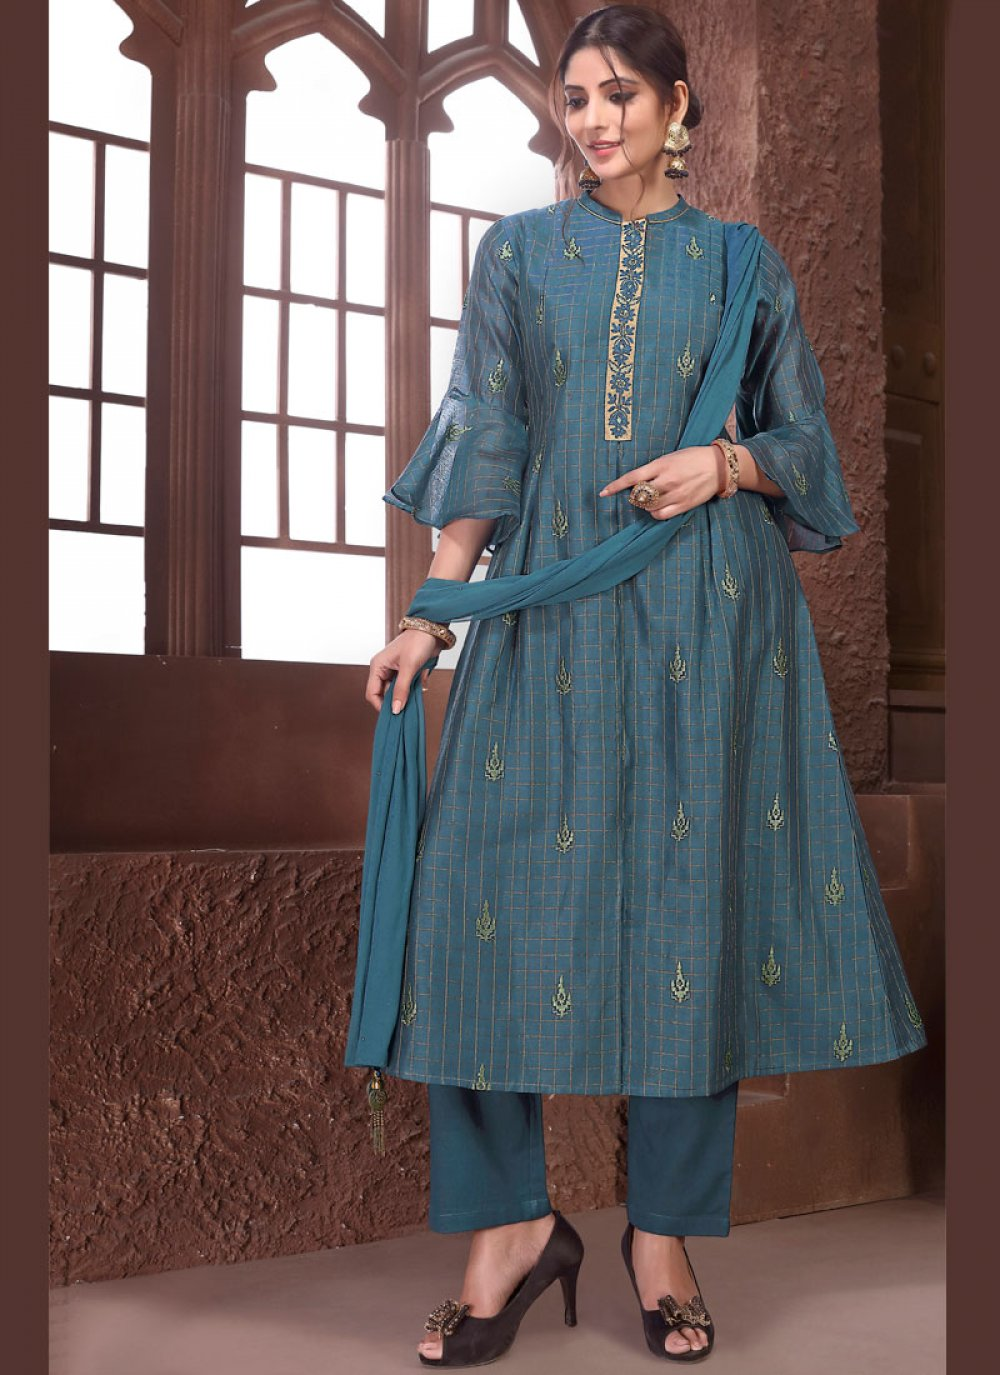 Teal Embroidered Salwar Suit